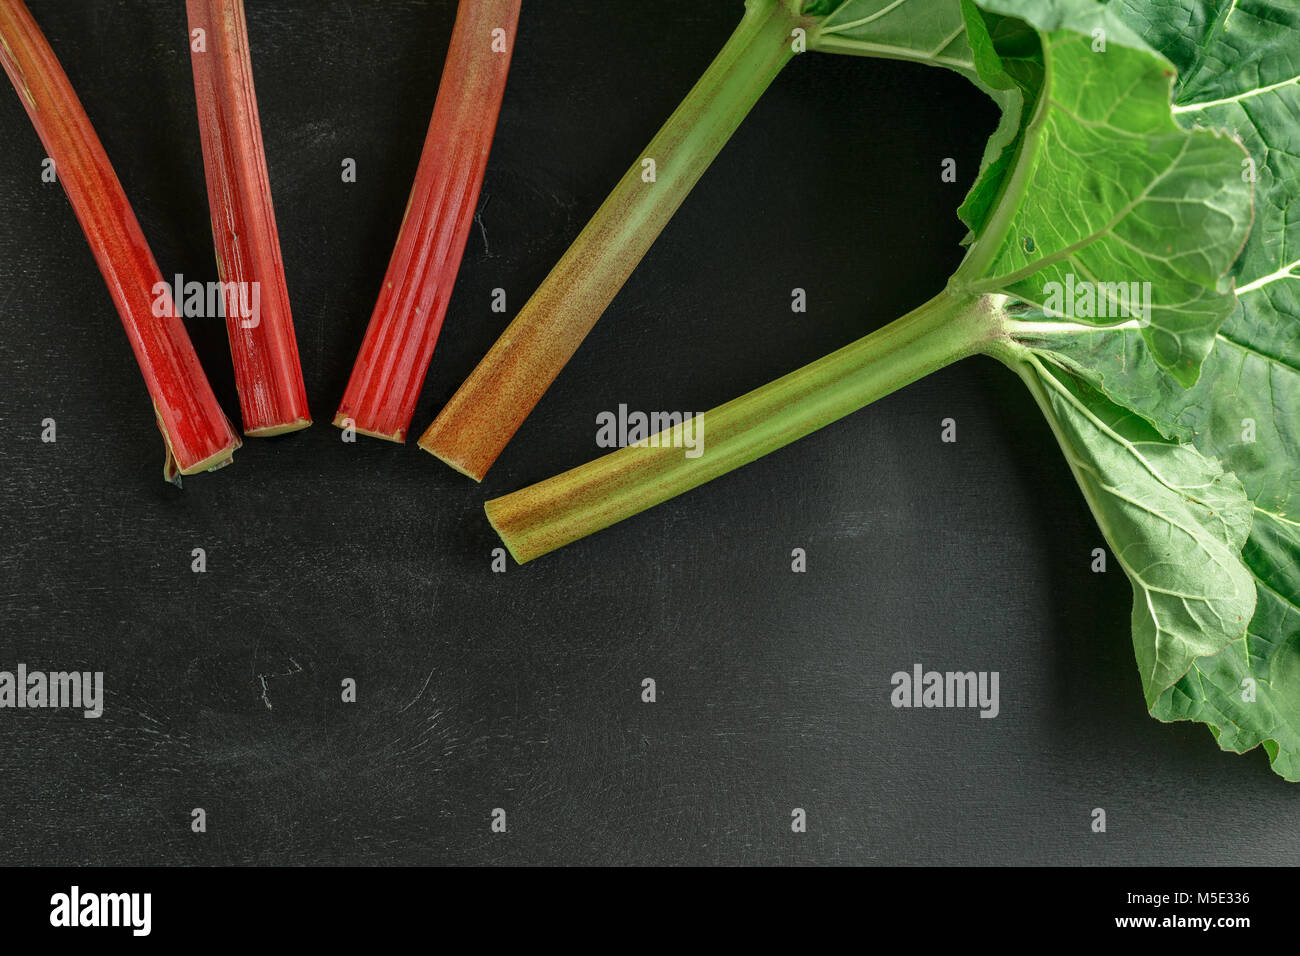 Fresh organic rhubarb stems with leaves on black board wooden background - Stock Image